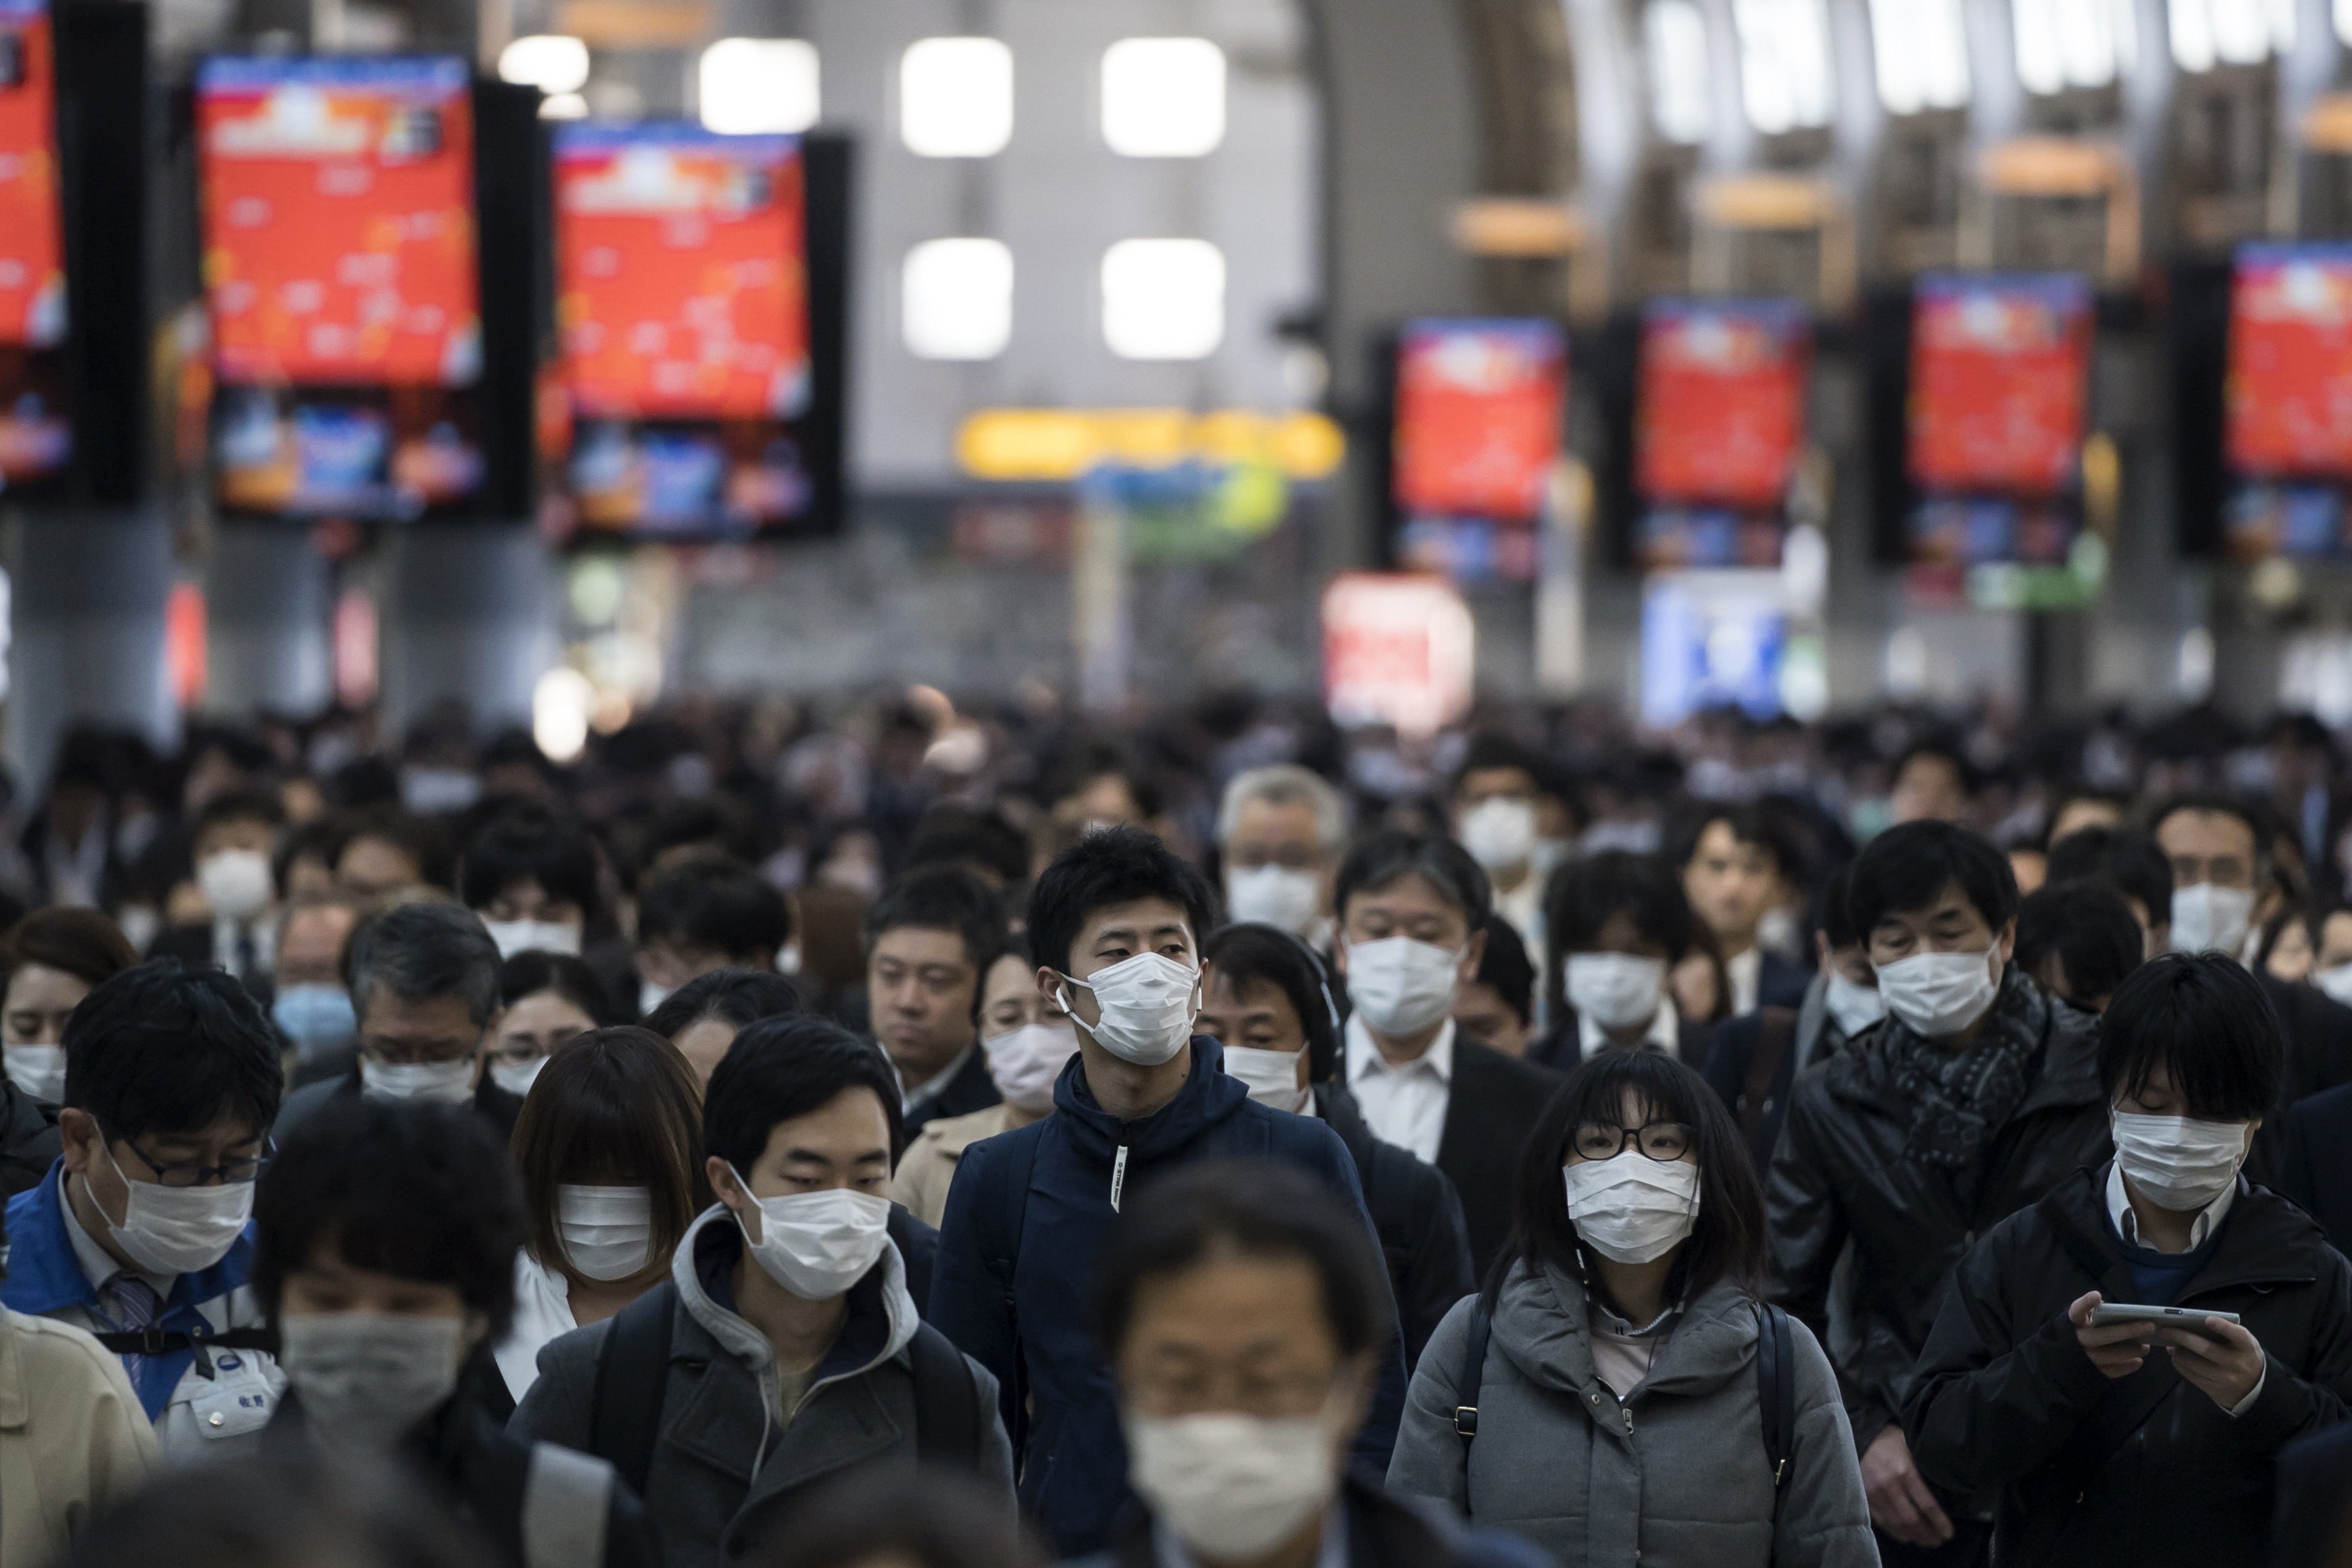 Commuters make their way to work in March, 2020 in Tokyo, Japan. (Photo: Tomohiro Ohsumi/Getty Images)